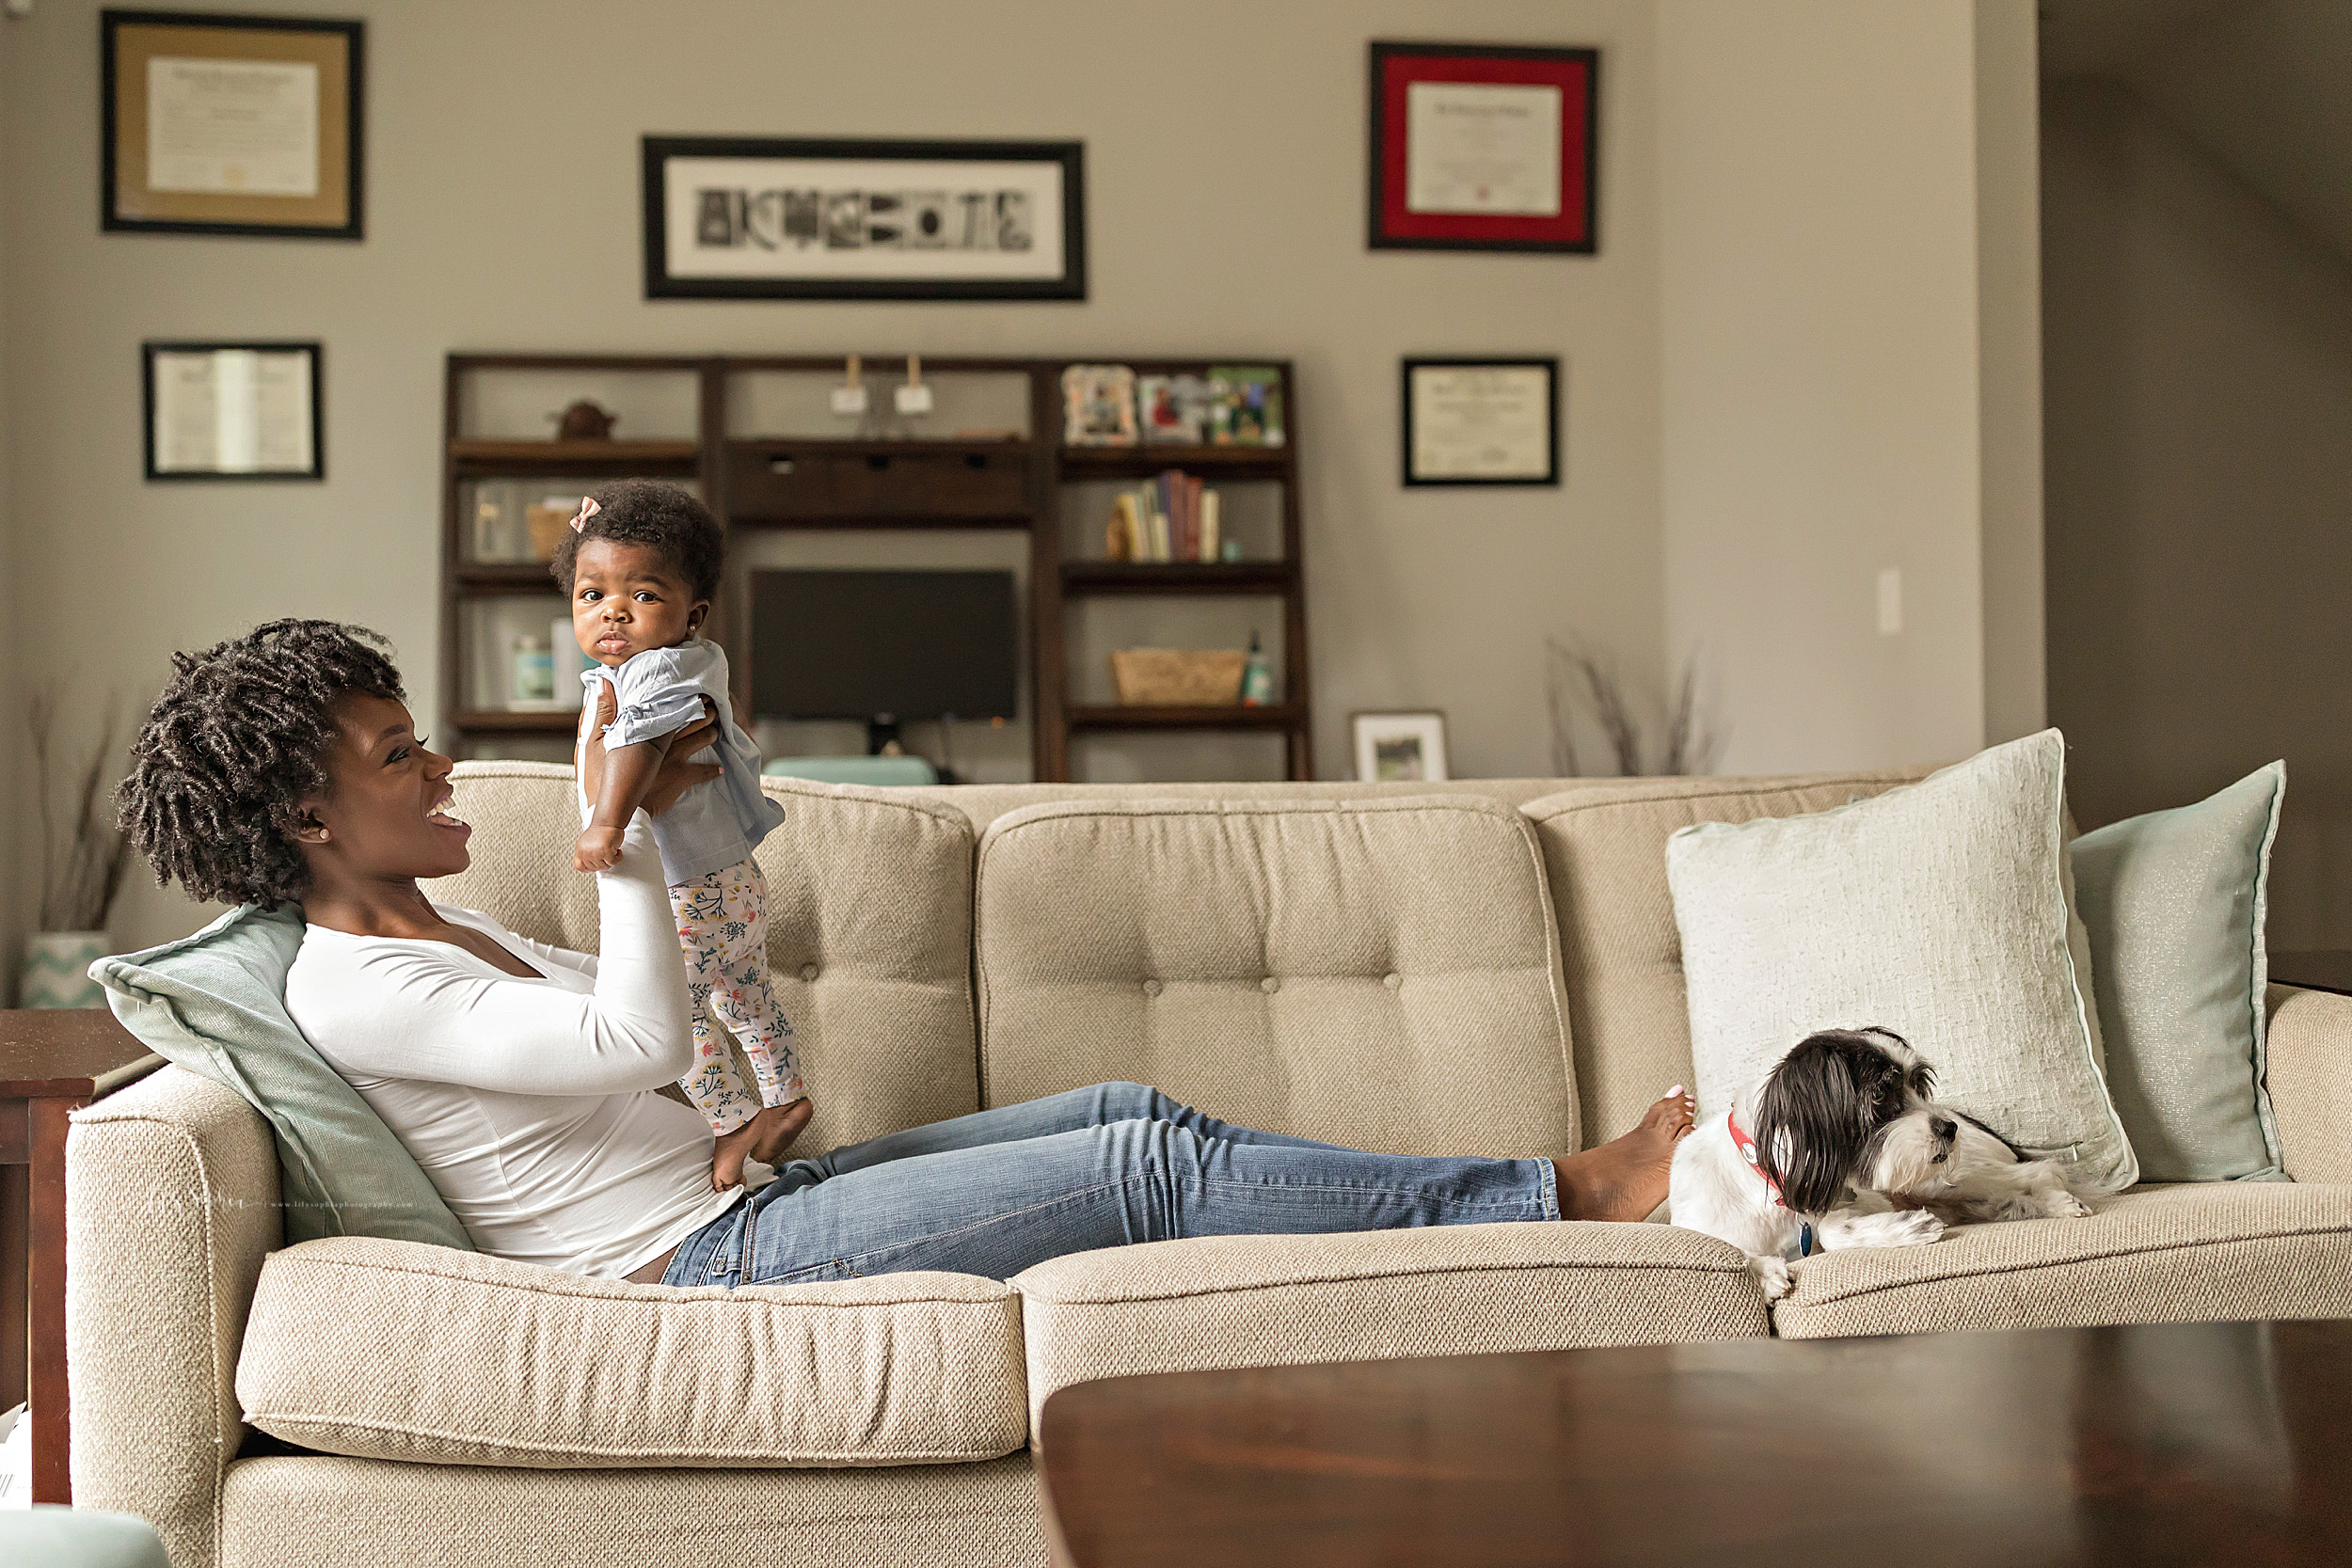 atlanta-midtown-brookhaven-decatur-lily-sophia-photography-photographer-portraits-grant-park-nigerian-family-in-home-lifestyle-big-brother-baby-sister_0021.jpg